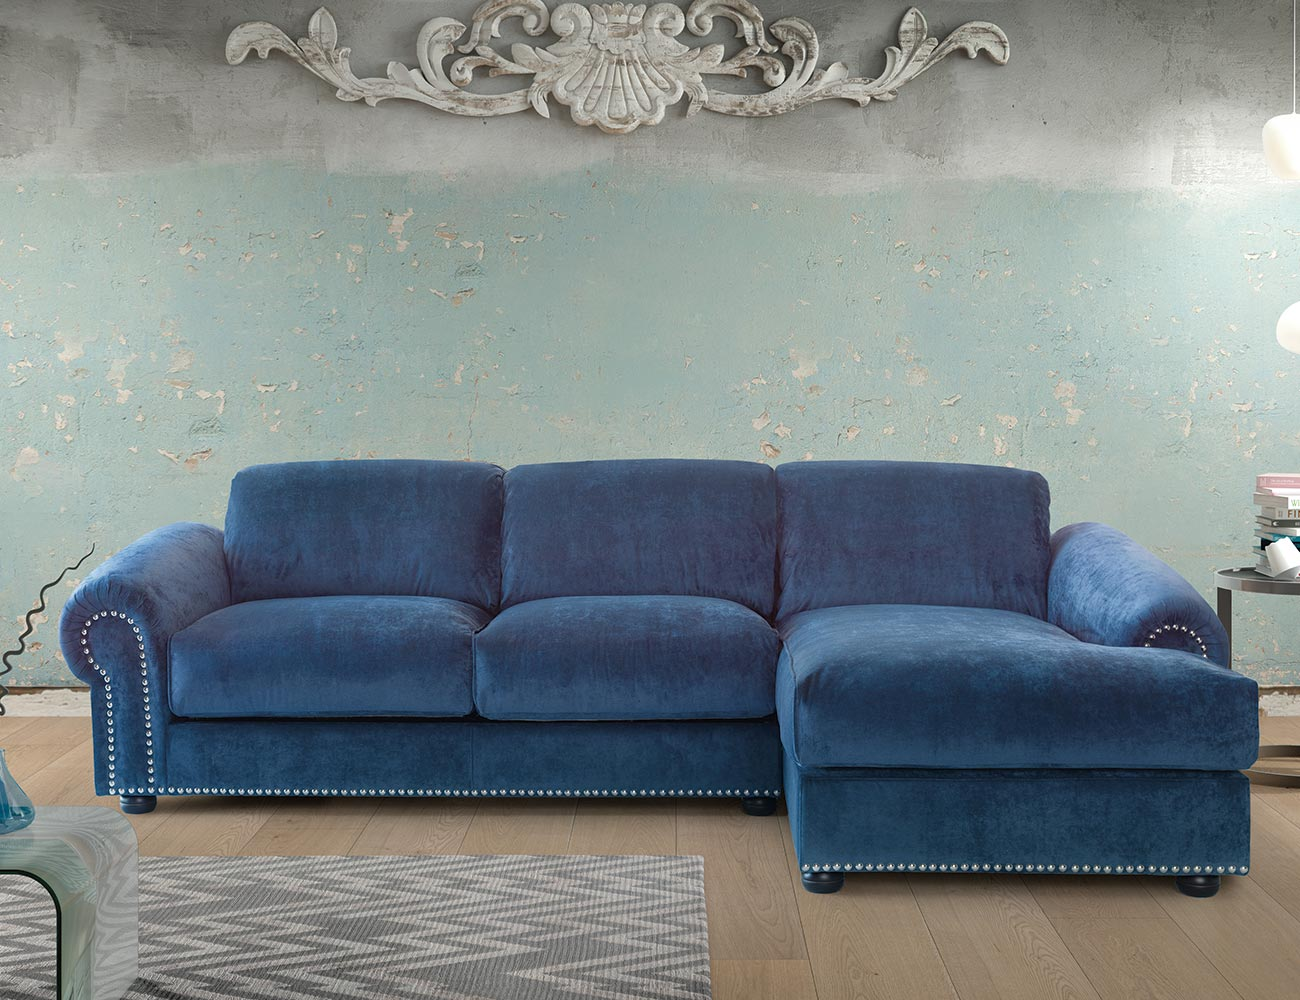 Sofa chaiselongue gran lujo decorativo azul